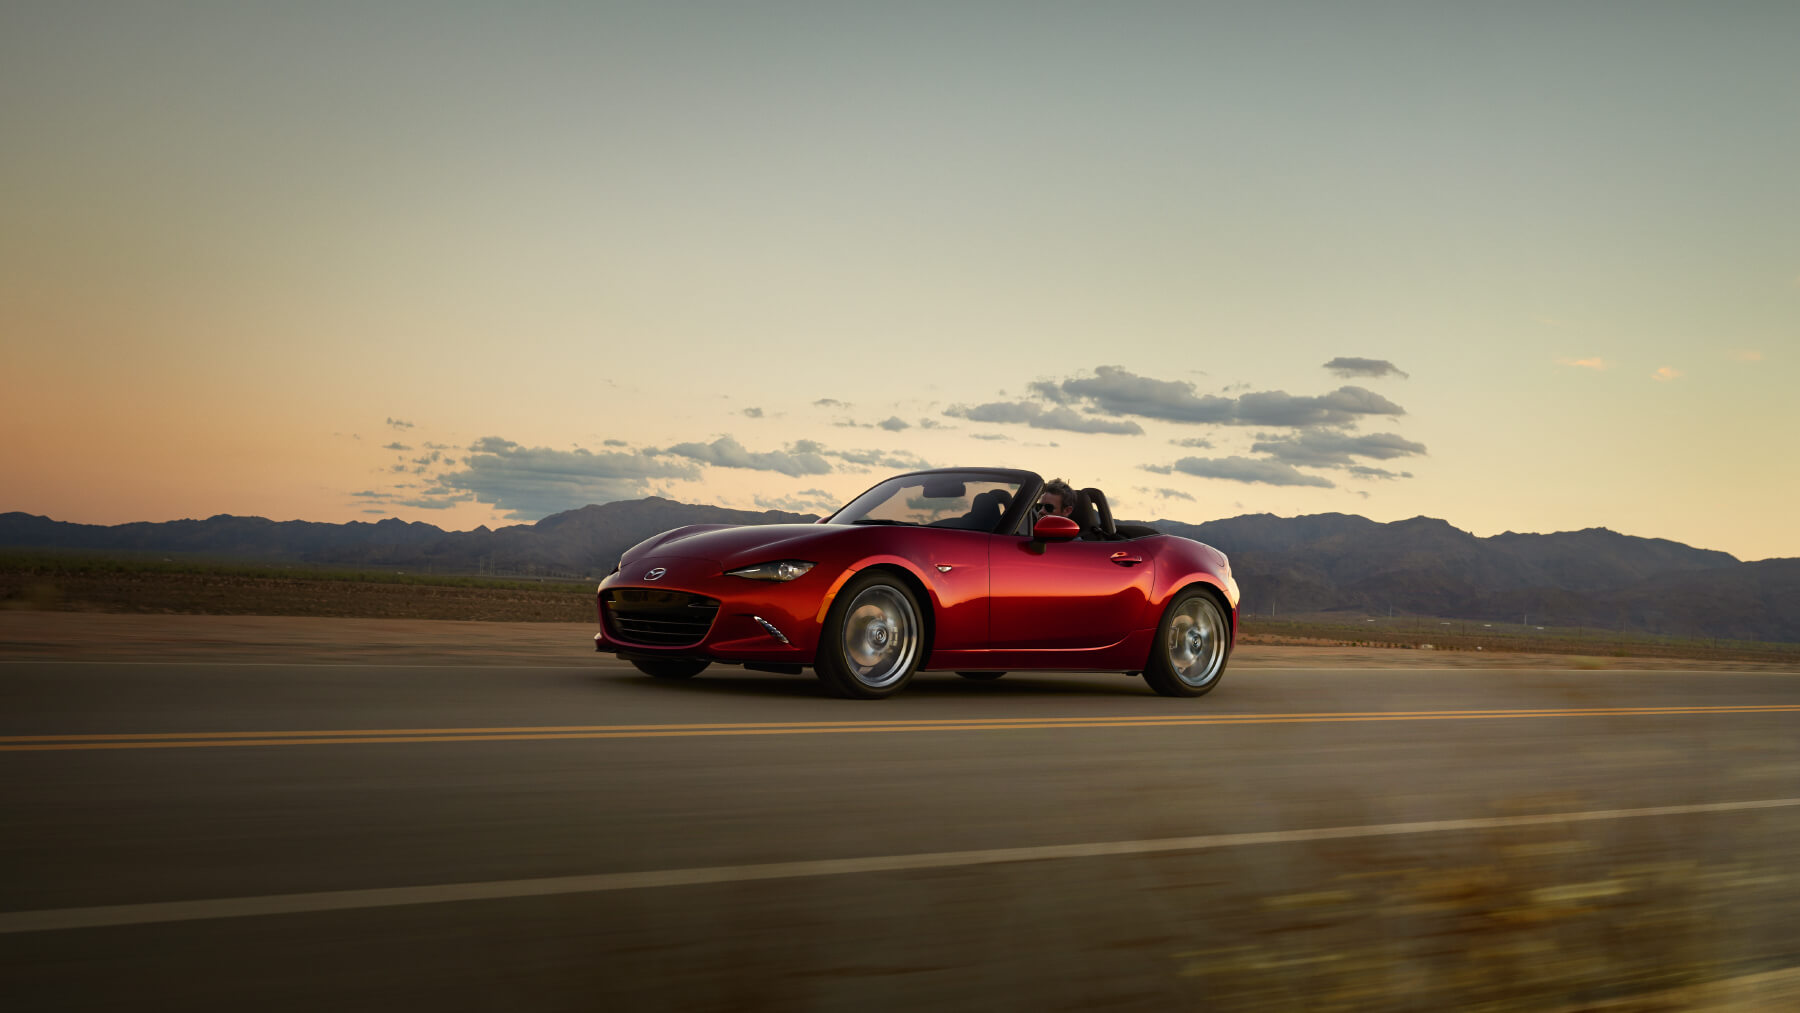 2016 Mazda MX-5 Miata Red Exterior On The Road